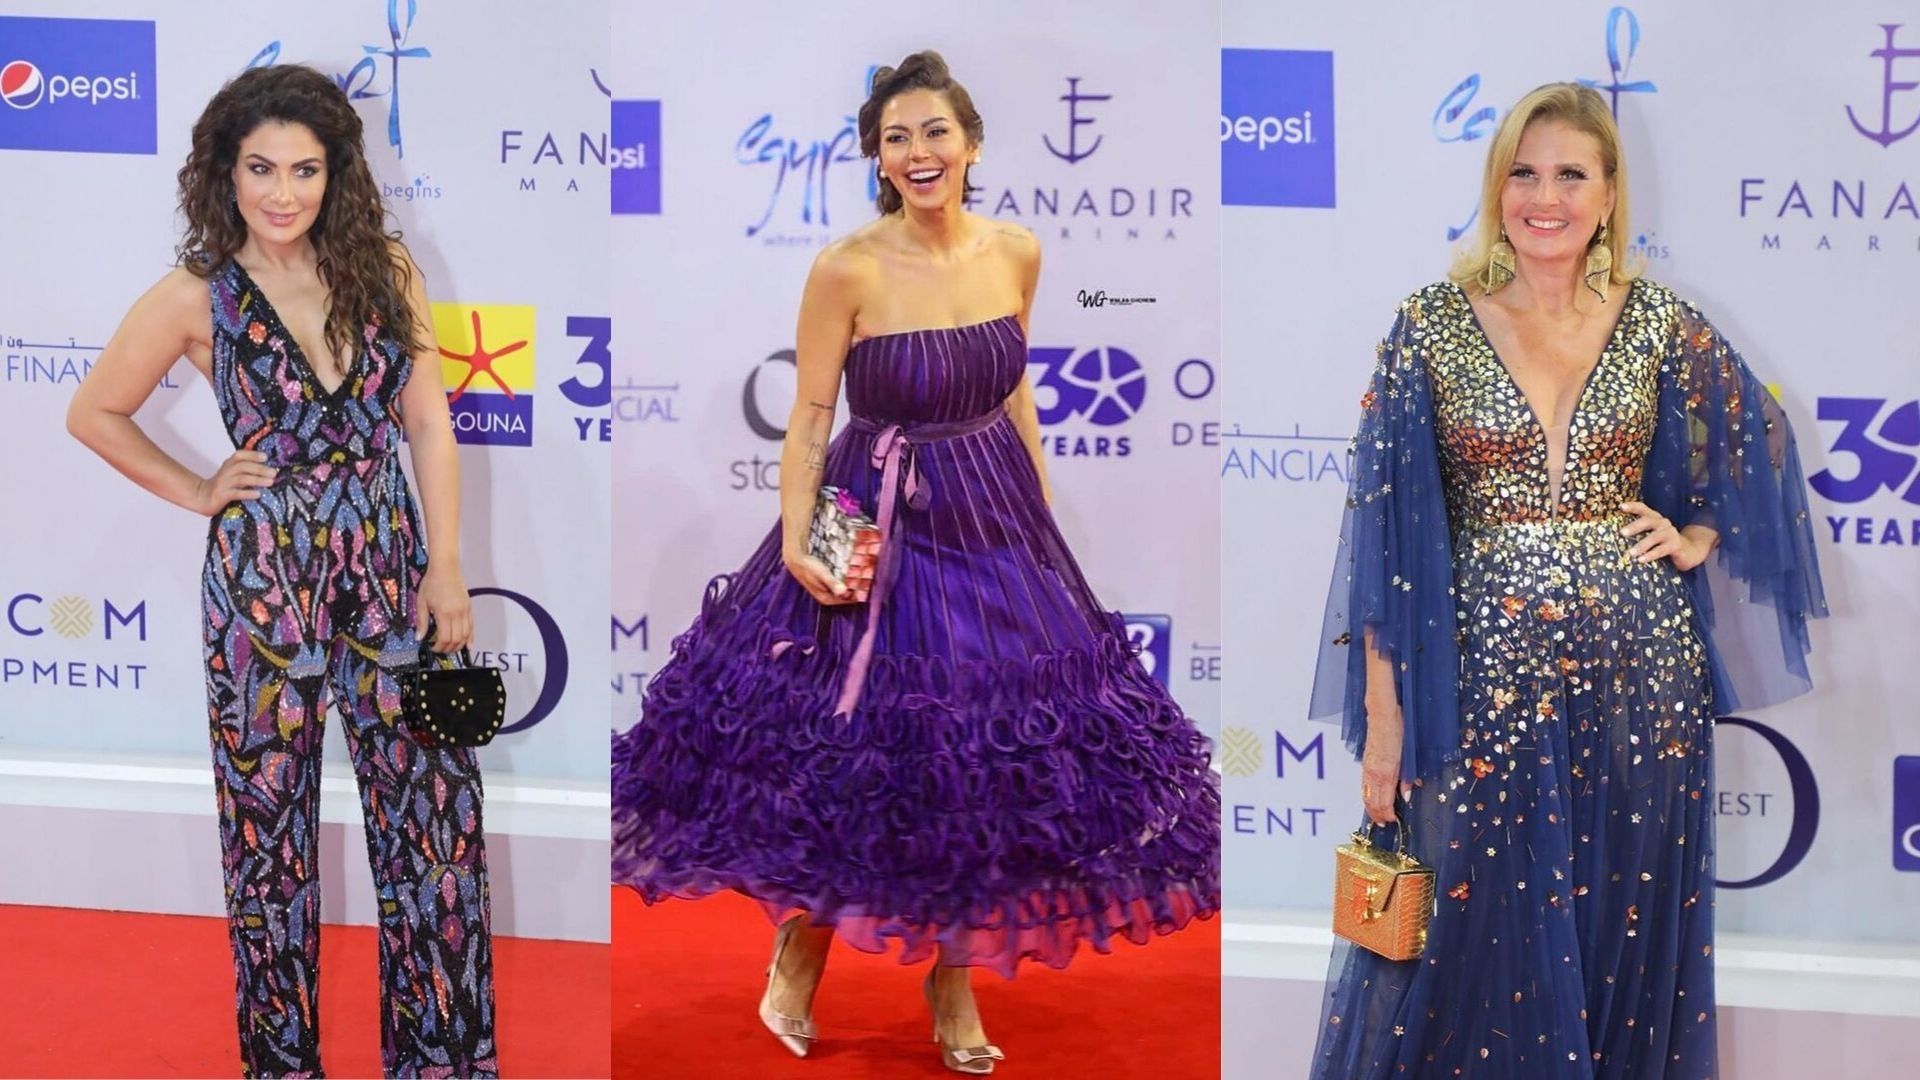 El Gouna Film Festival 2019: The Most Dazzling Red Carpet Looks